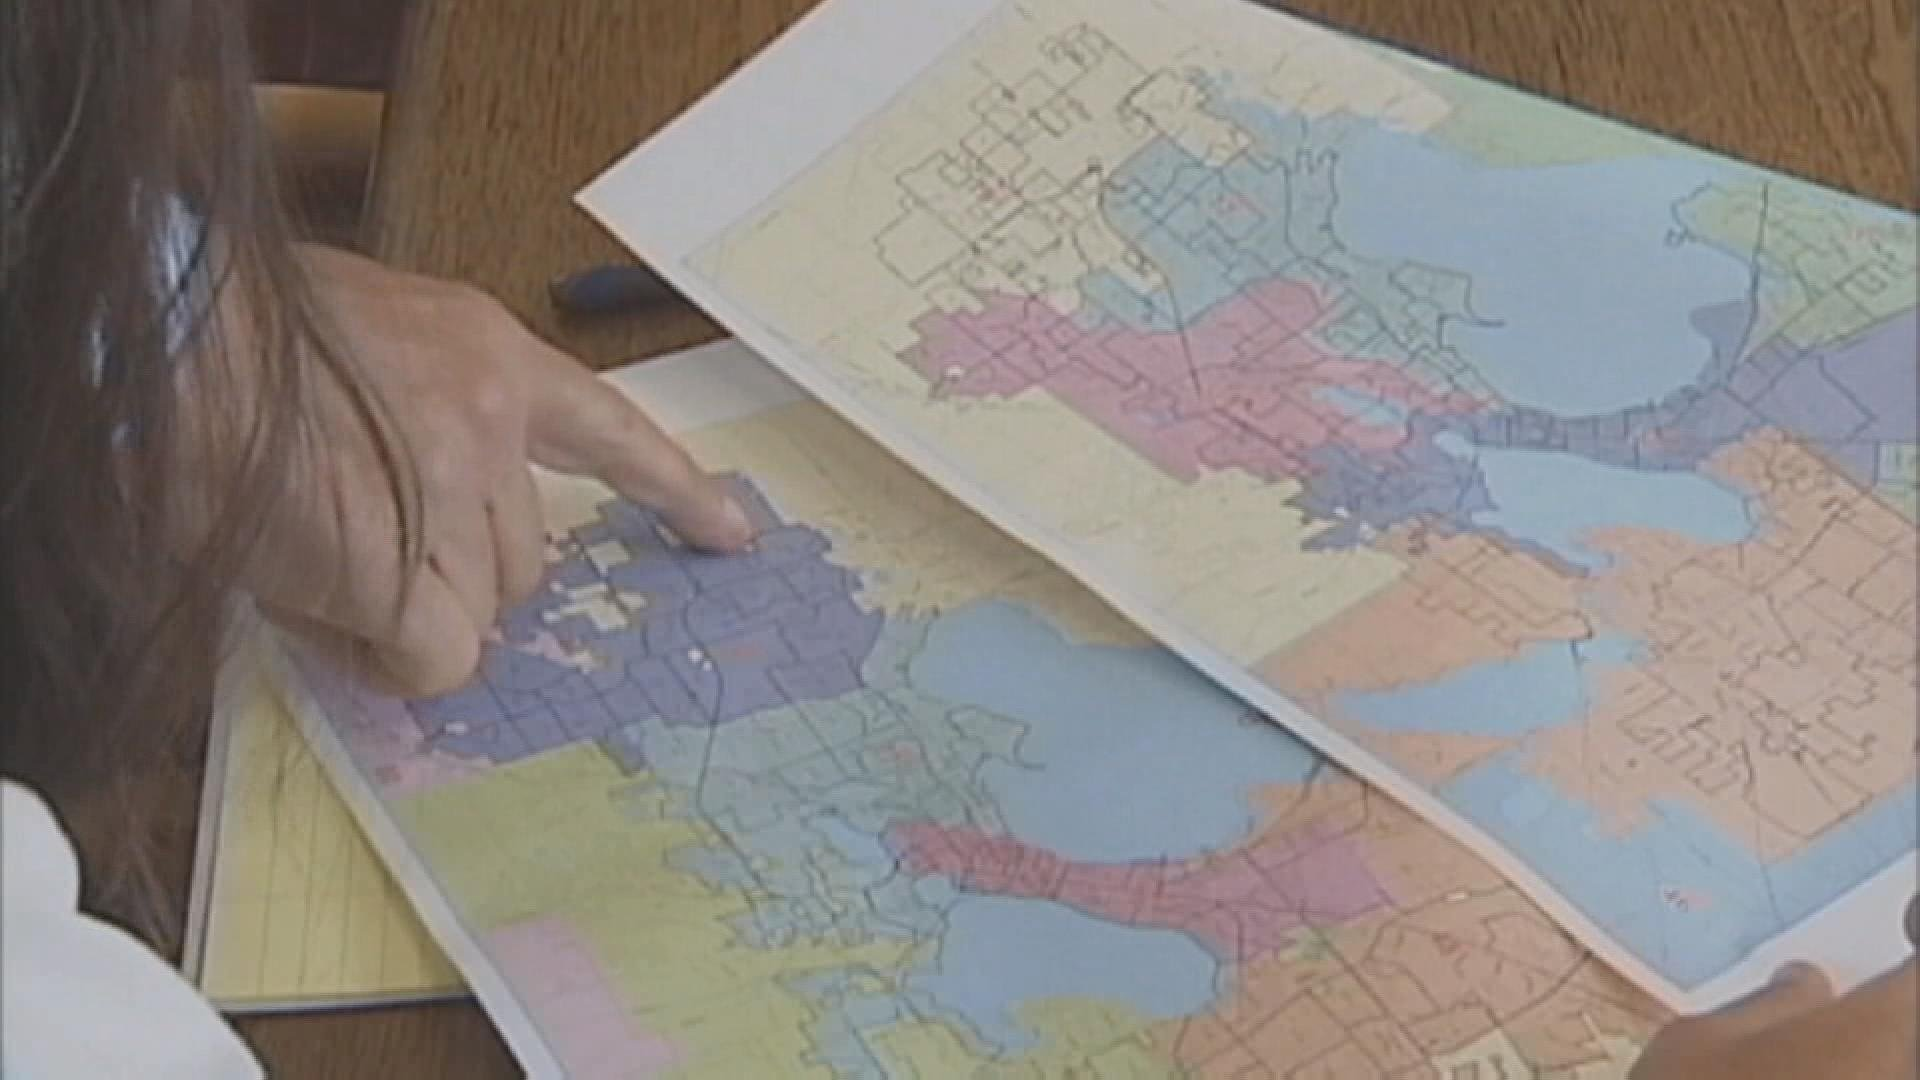 Supreme Court divided over partisan districting